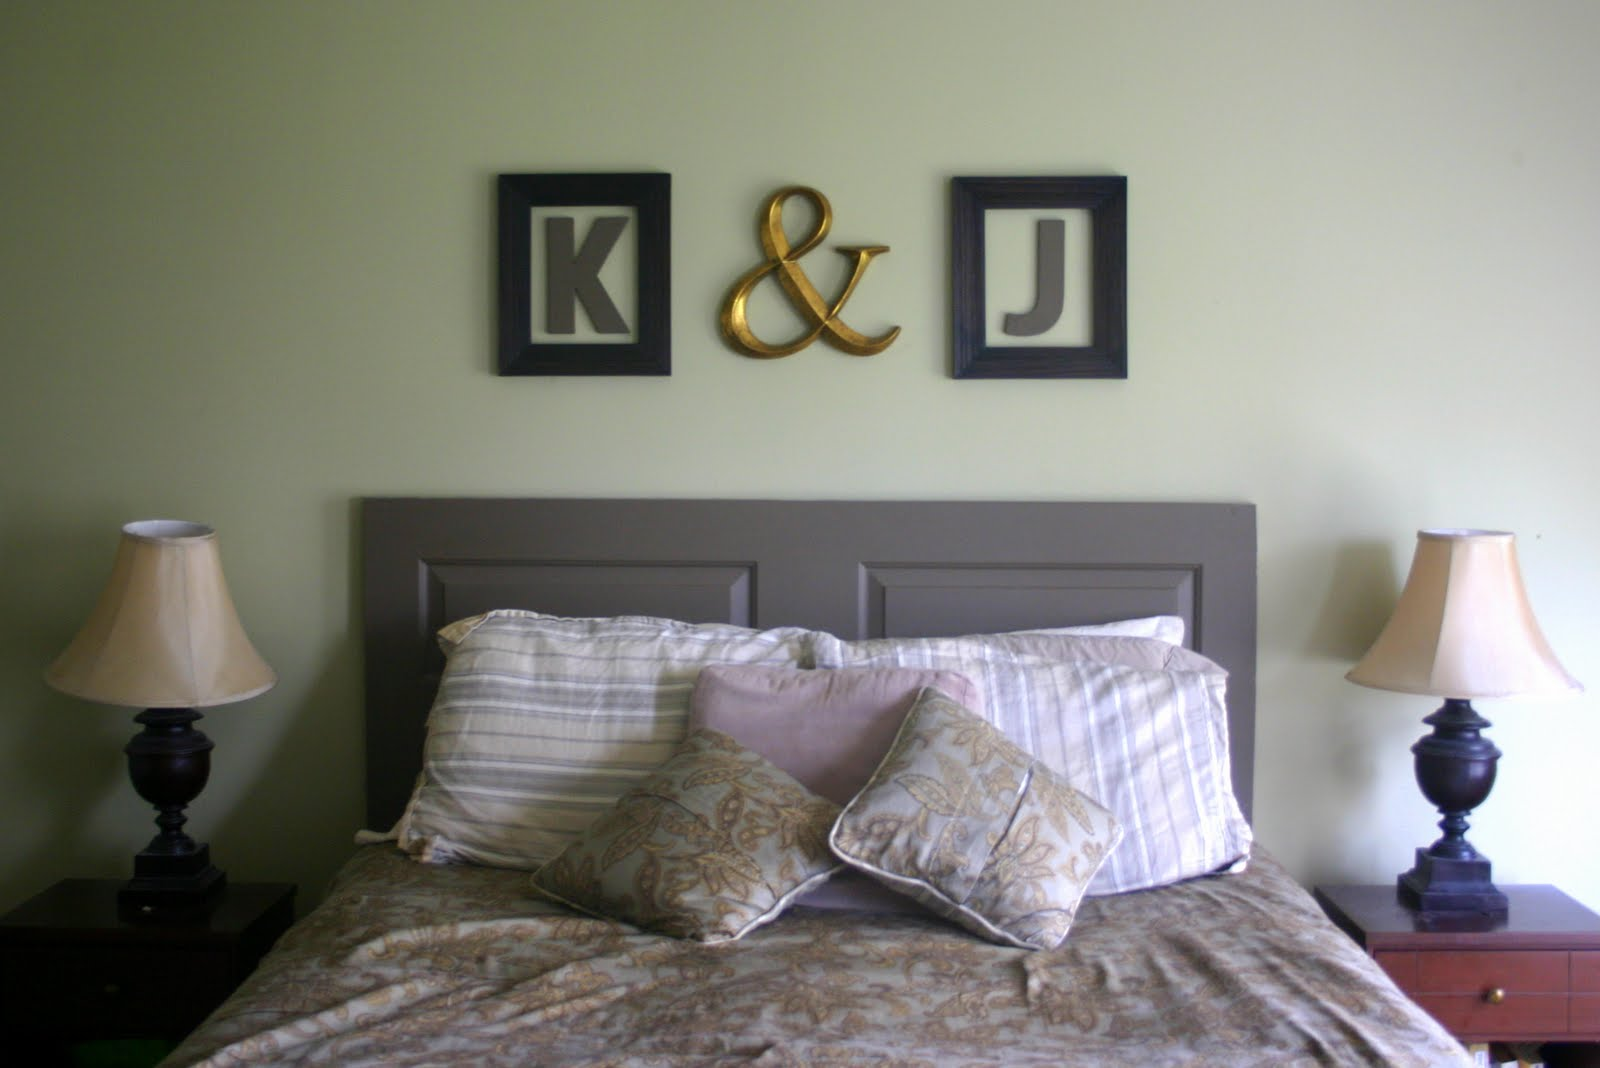 do it yourself headboard - Home Decor